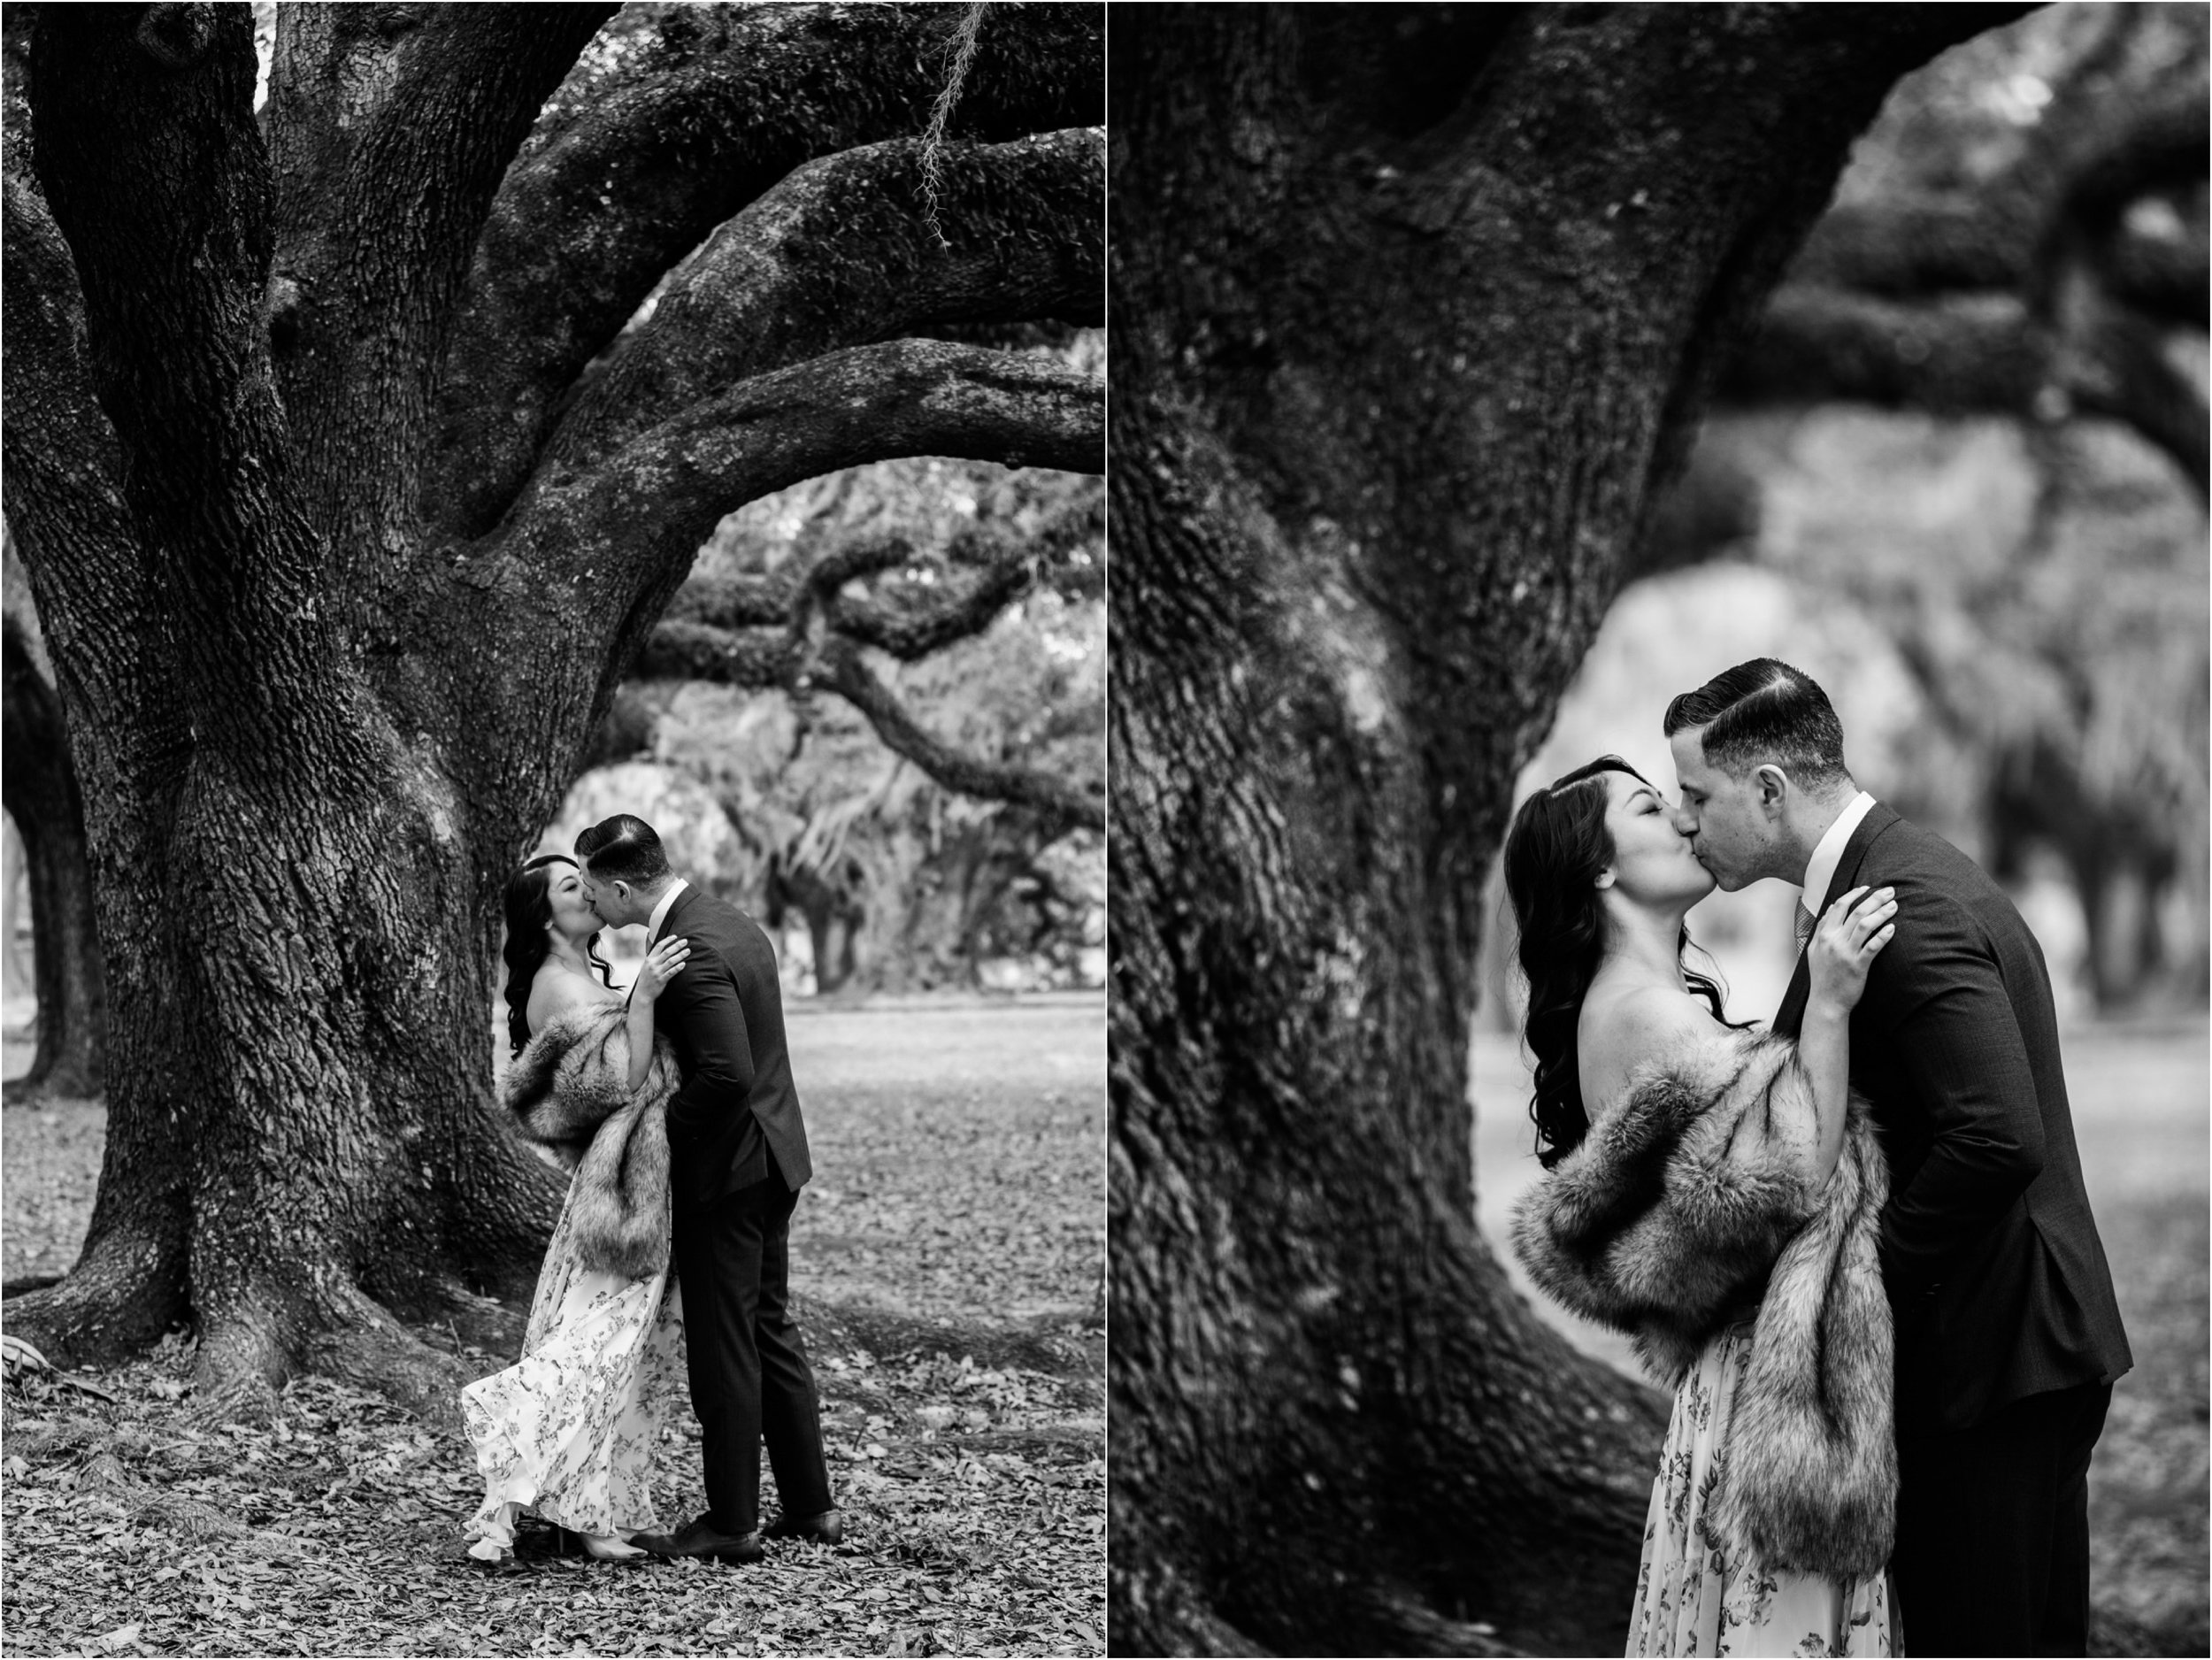 City Park Elopement New Orleans Wedding Photographer Ashley Biltz Photography11.jpg